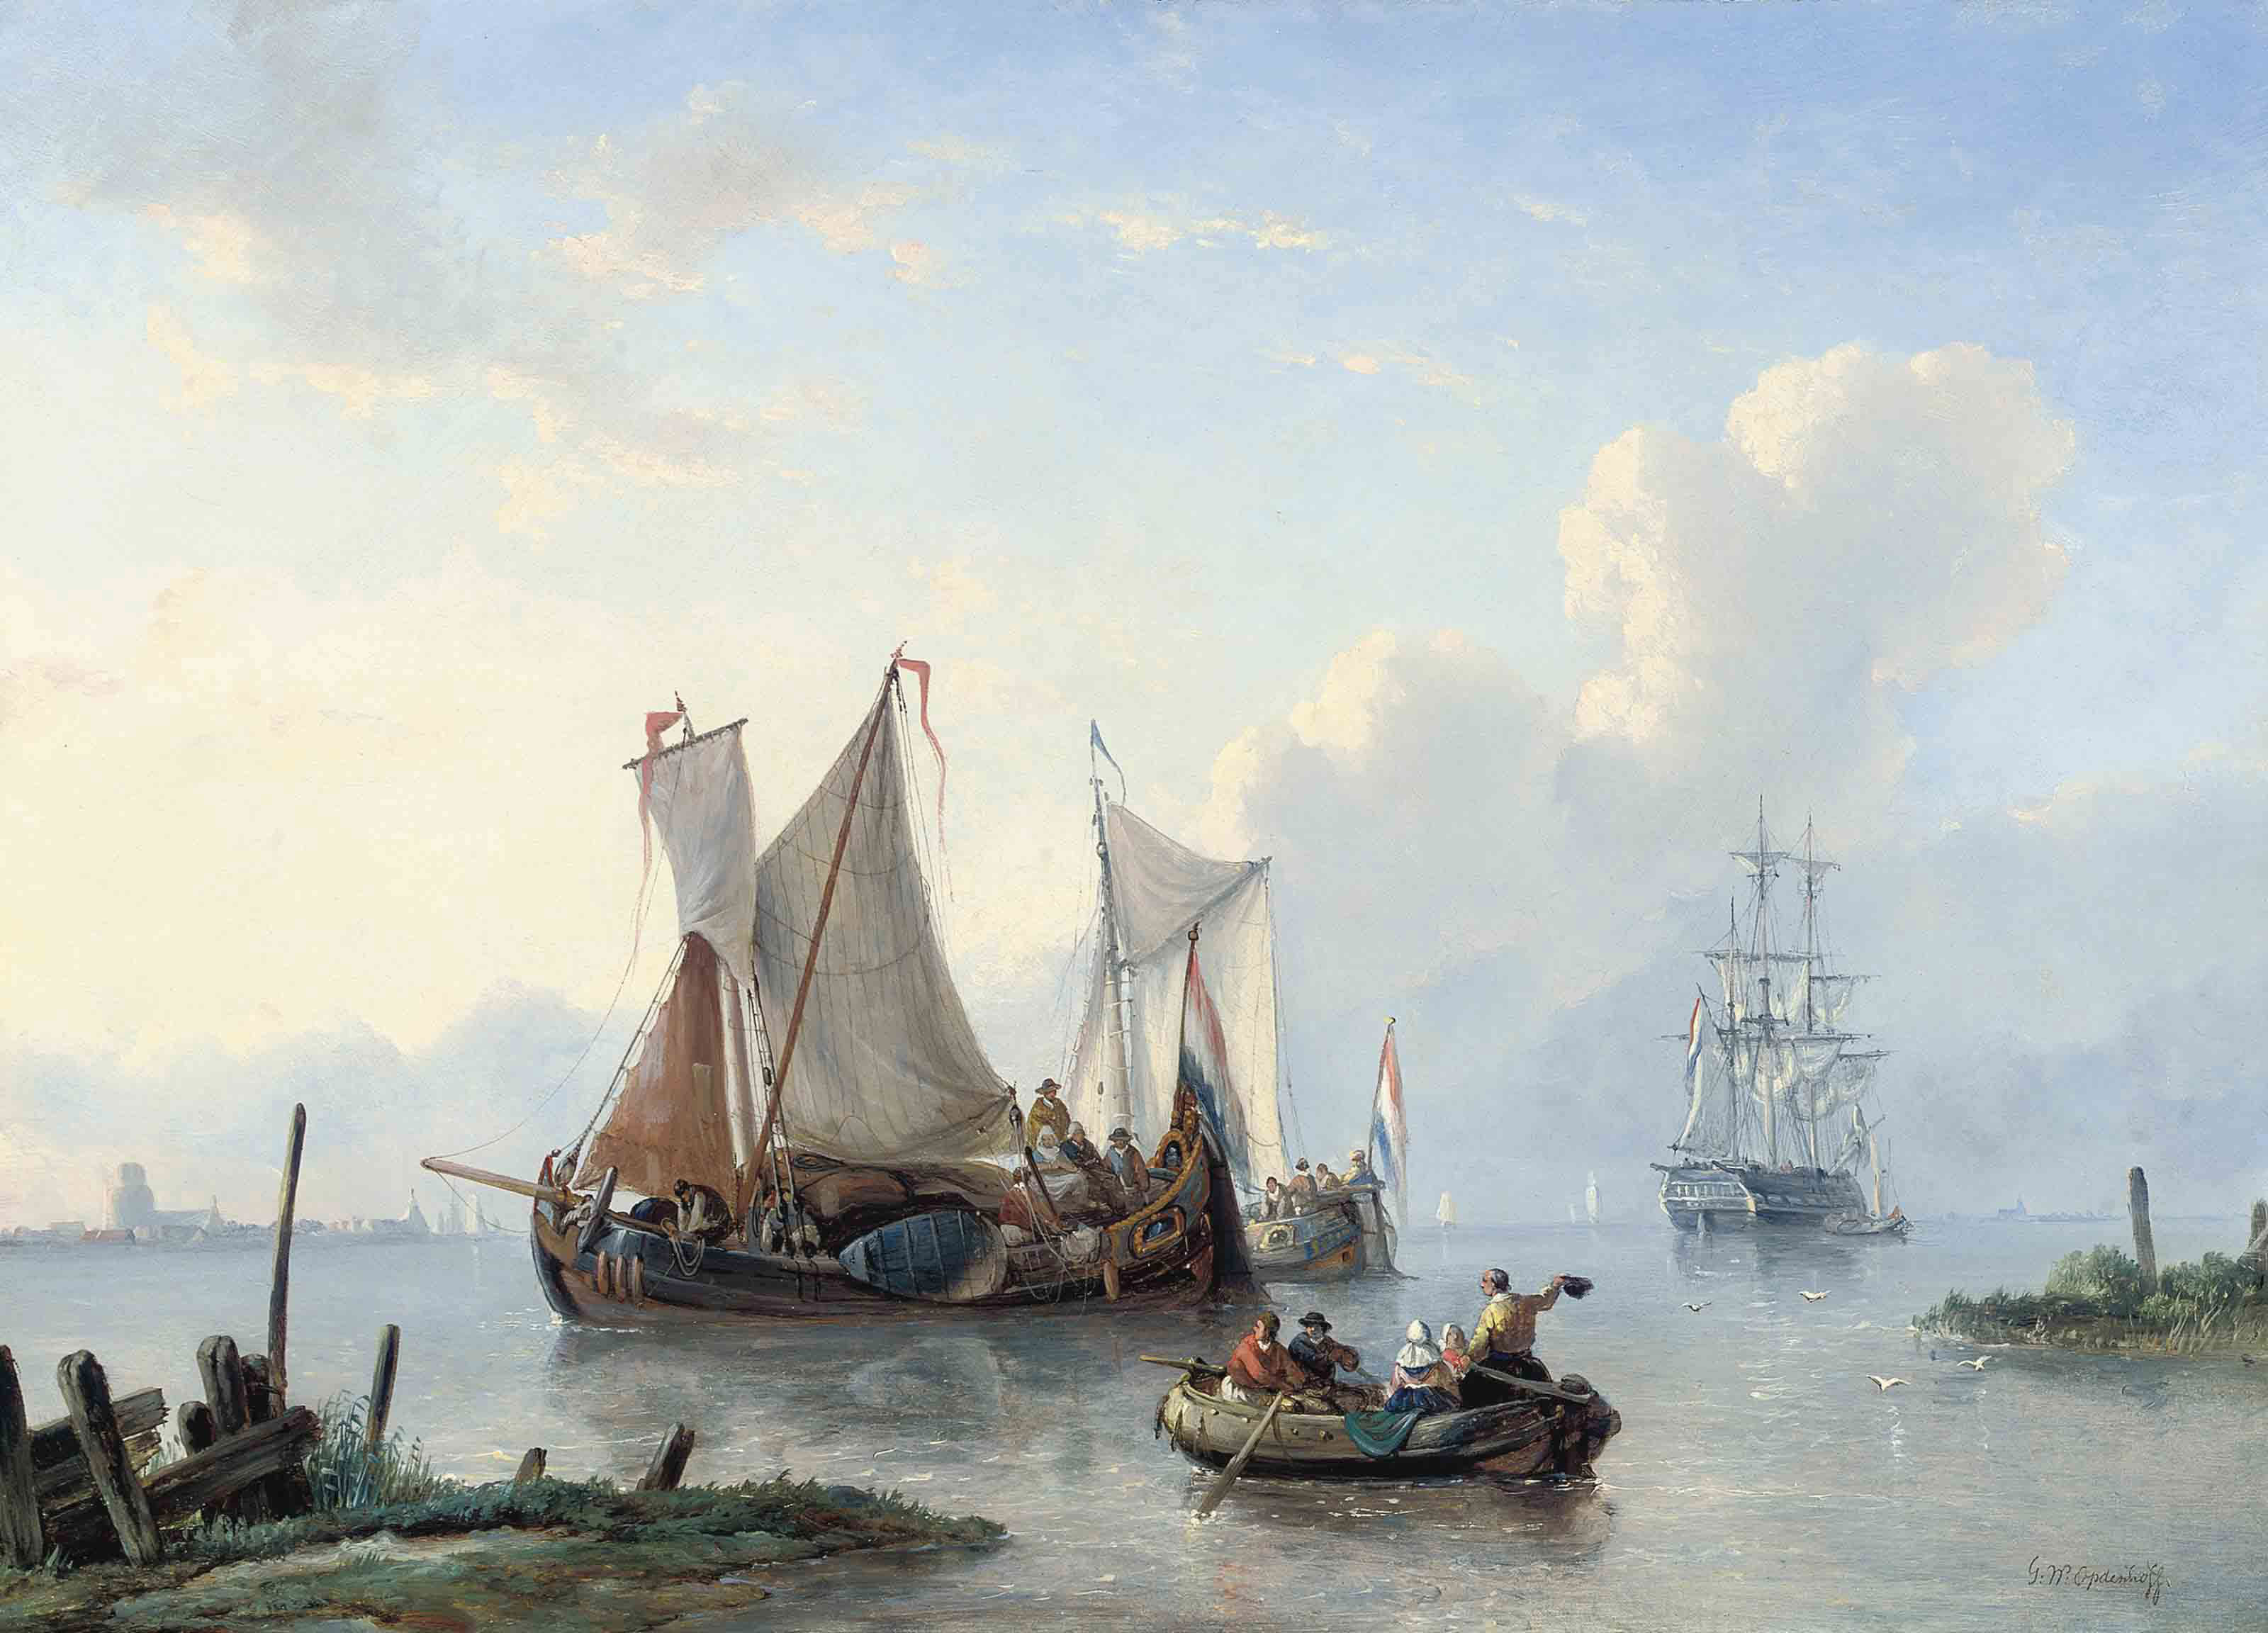 Dutch vessels at the mouth of a river